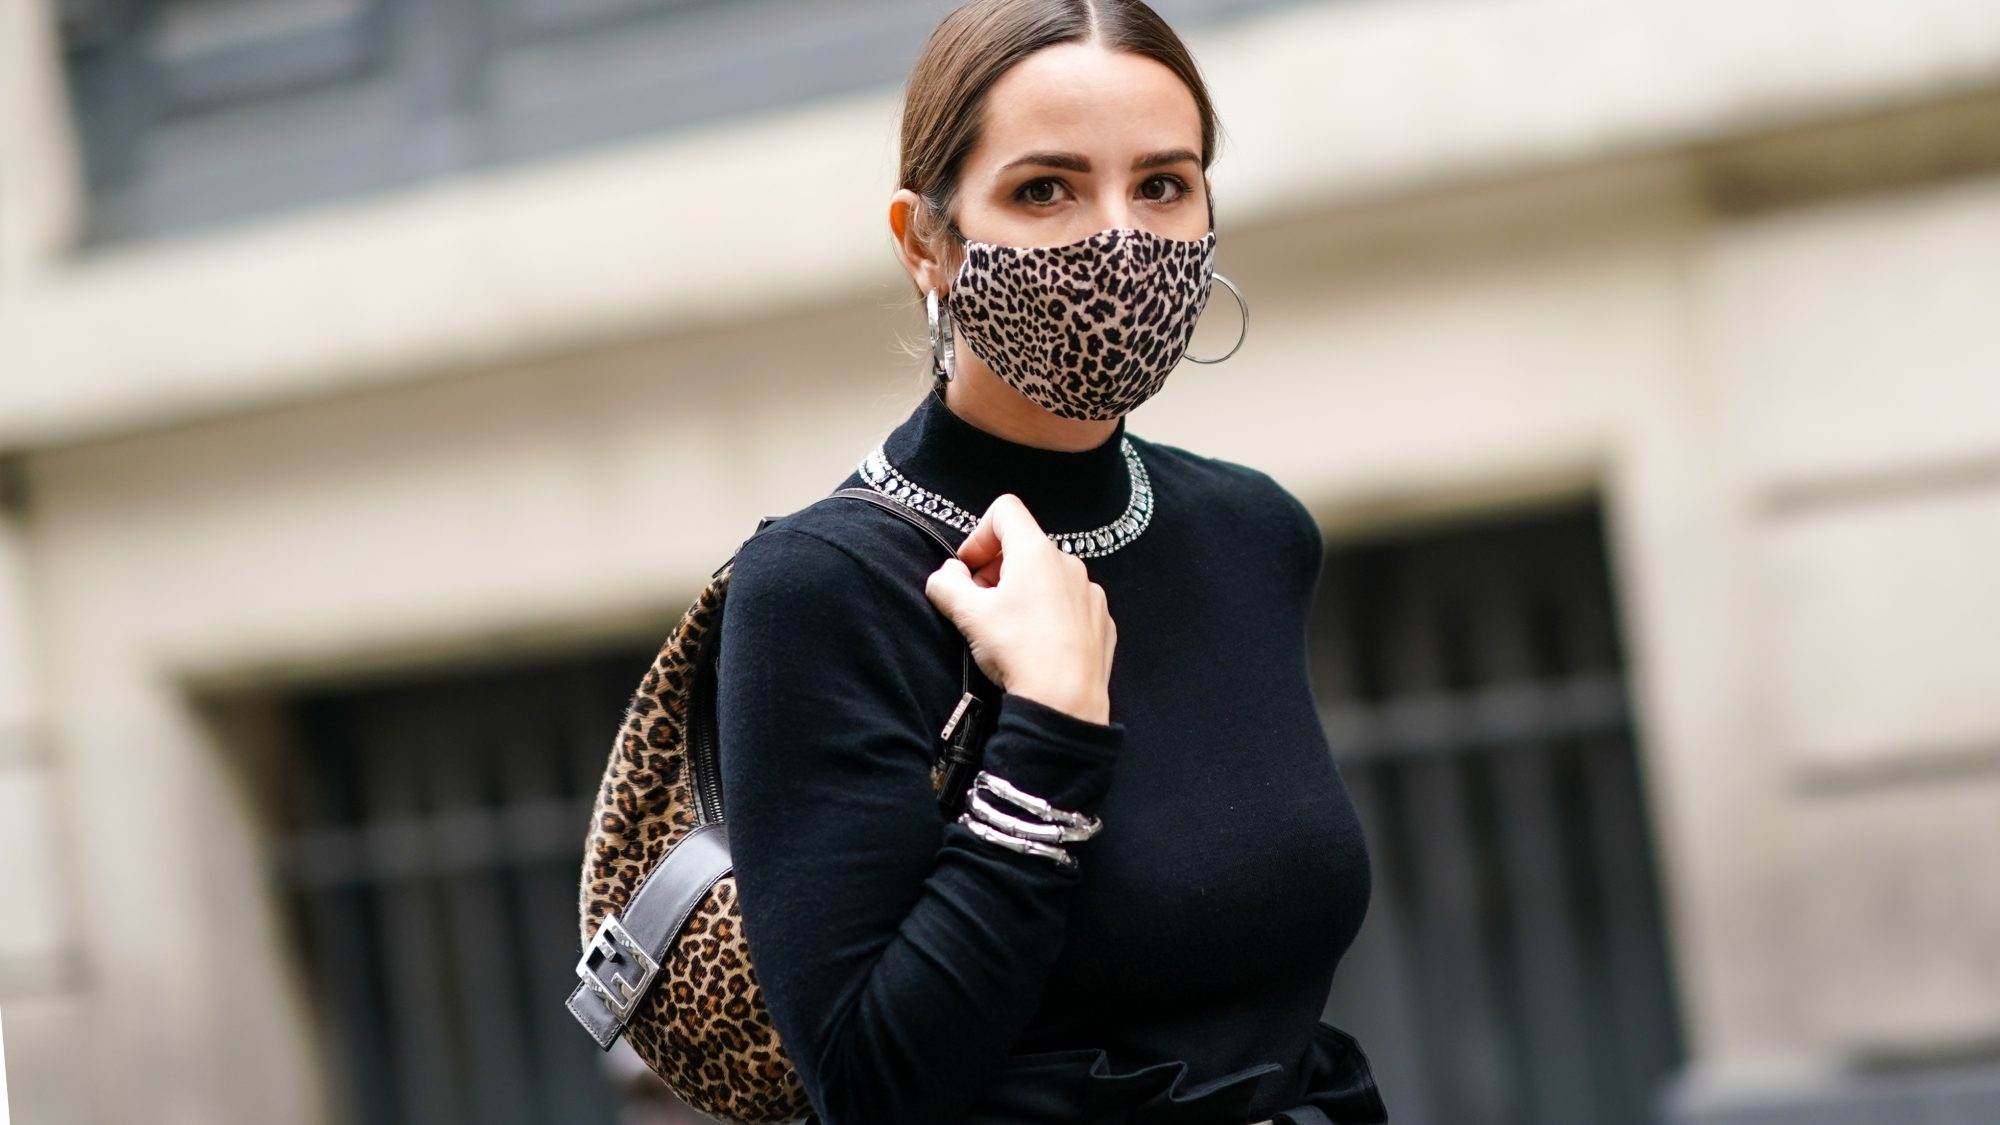 ppe-clothing: woman wearing a face mask